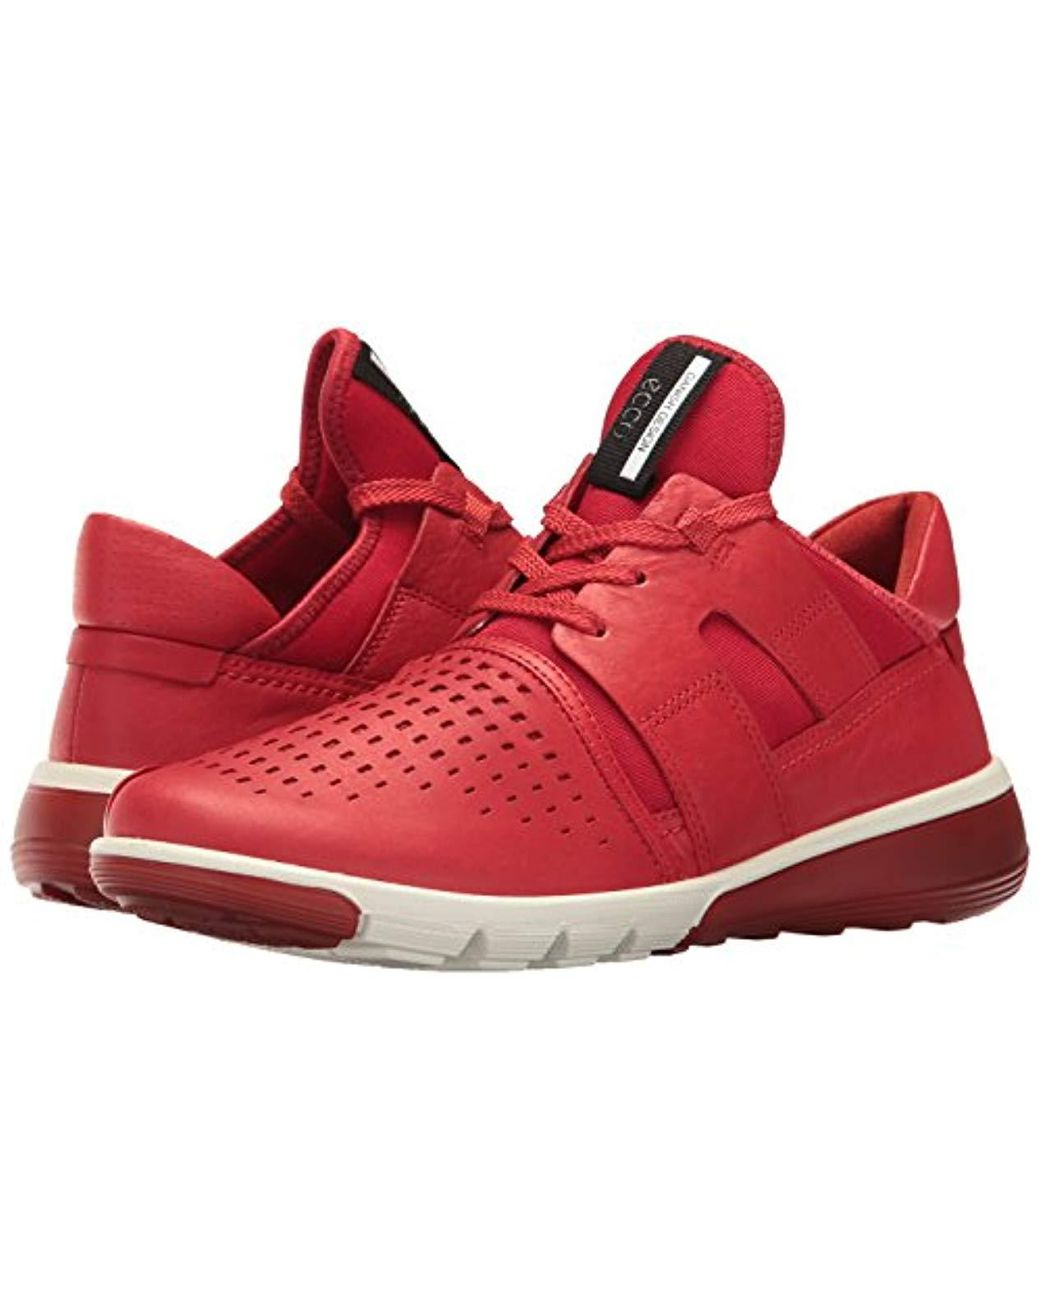 22814be5 Women's Red Intrinsic 2 Fashion Sneaker